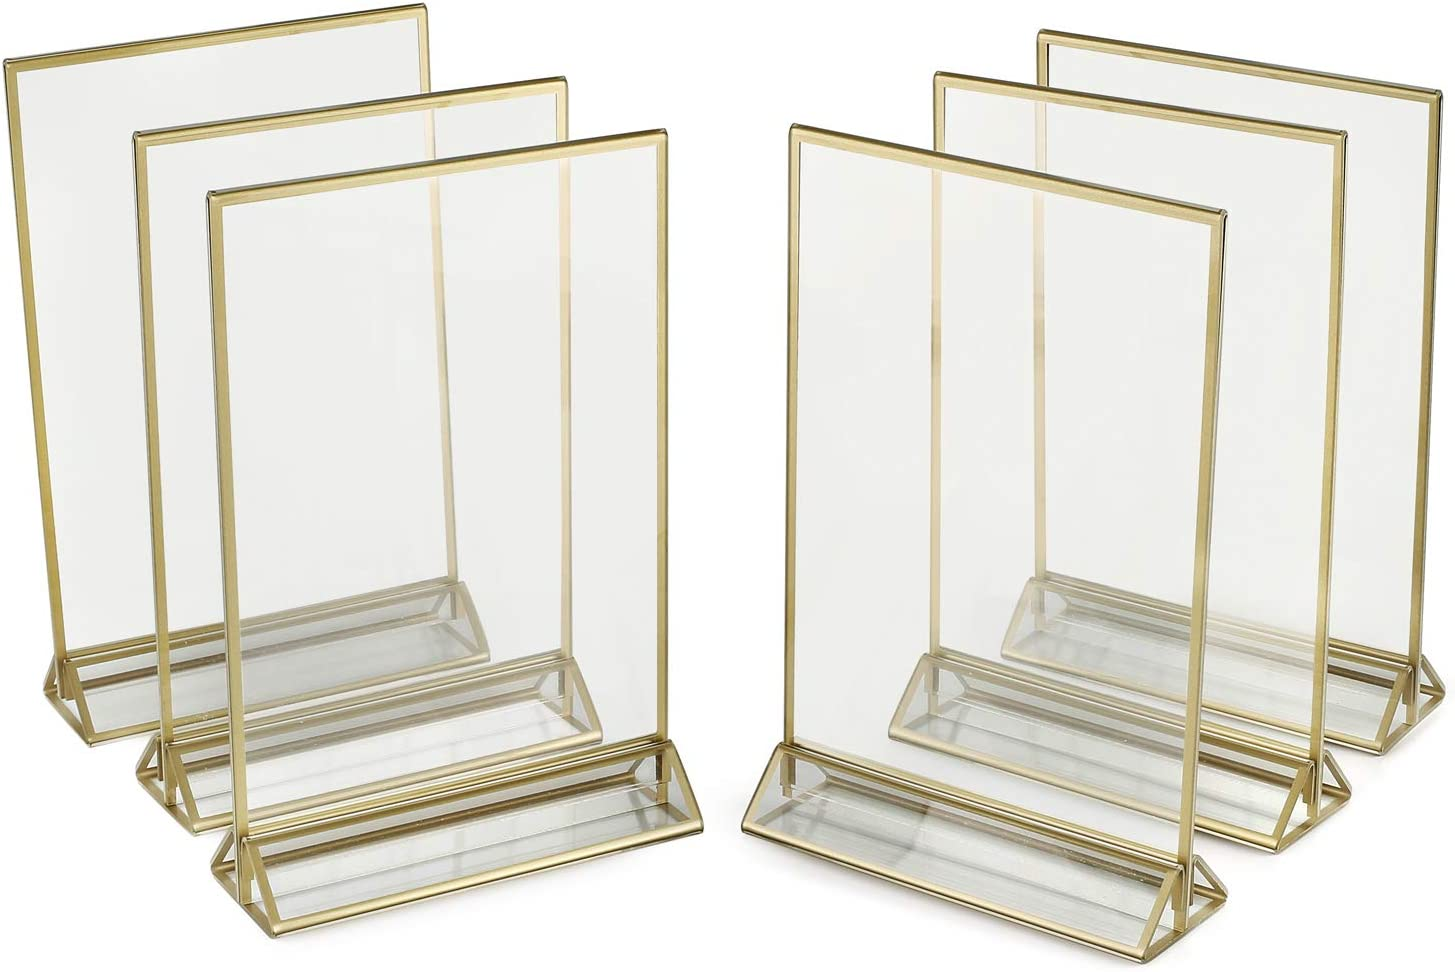 SUPER STAR QUALITY Clear Acrylic 2 Sided Frames With Gold Borders and Vertical Stand (Pack of 6) ) | Ideal for Wedding Table Number Holder, Double Sided Sign, Clear Photos, Menu Holders